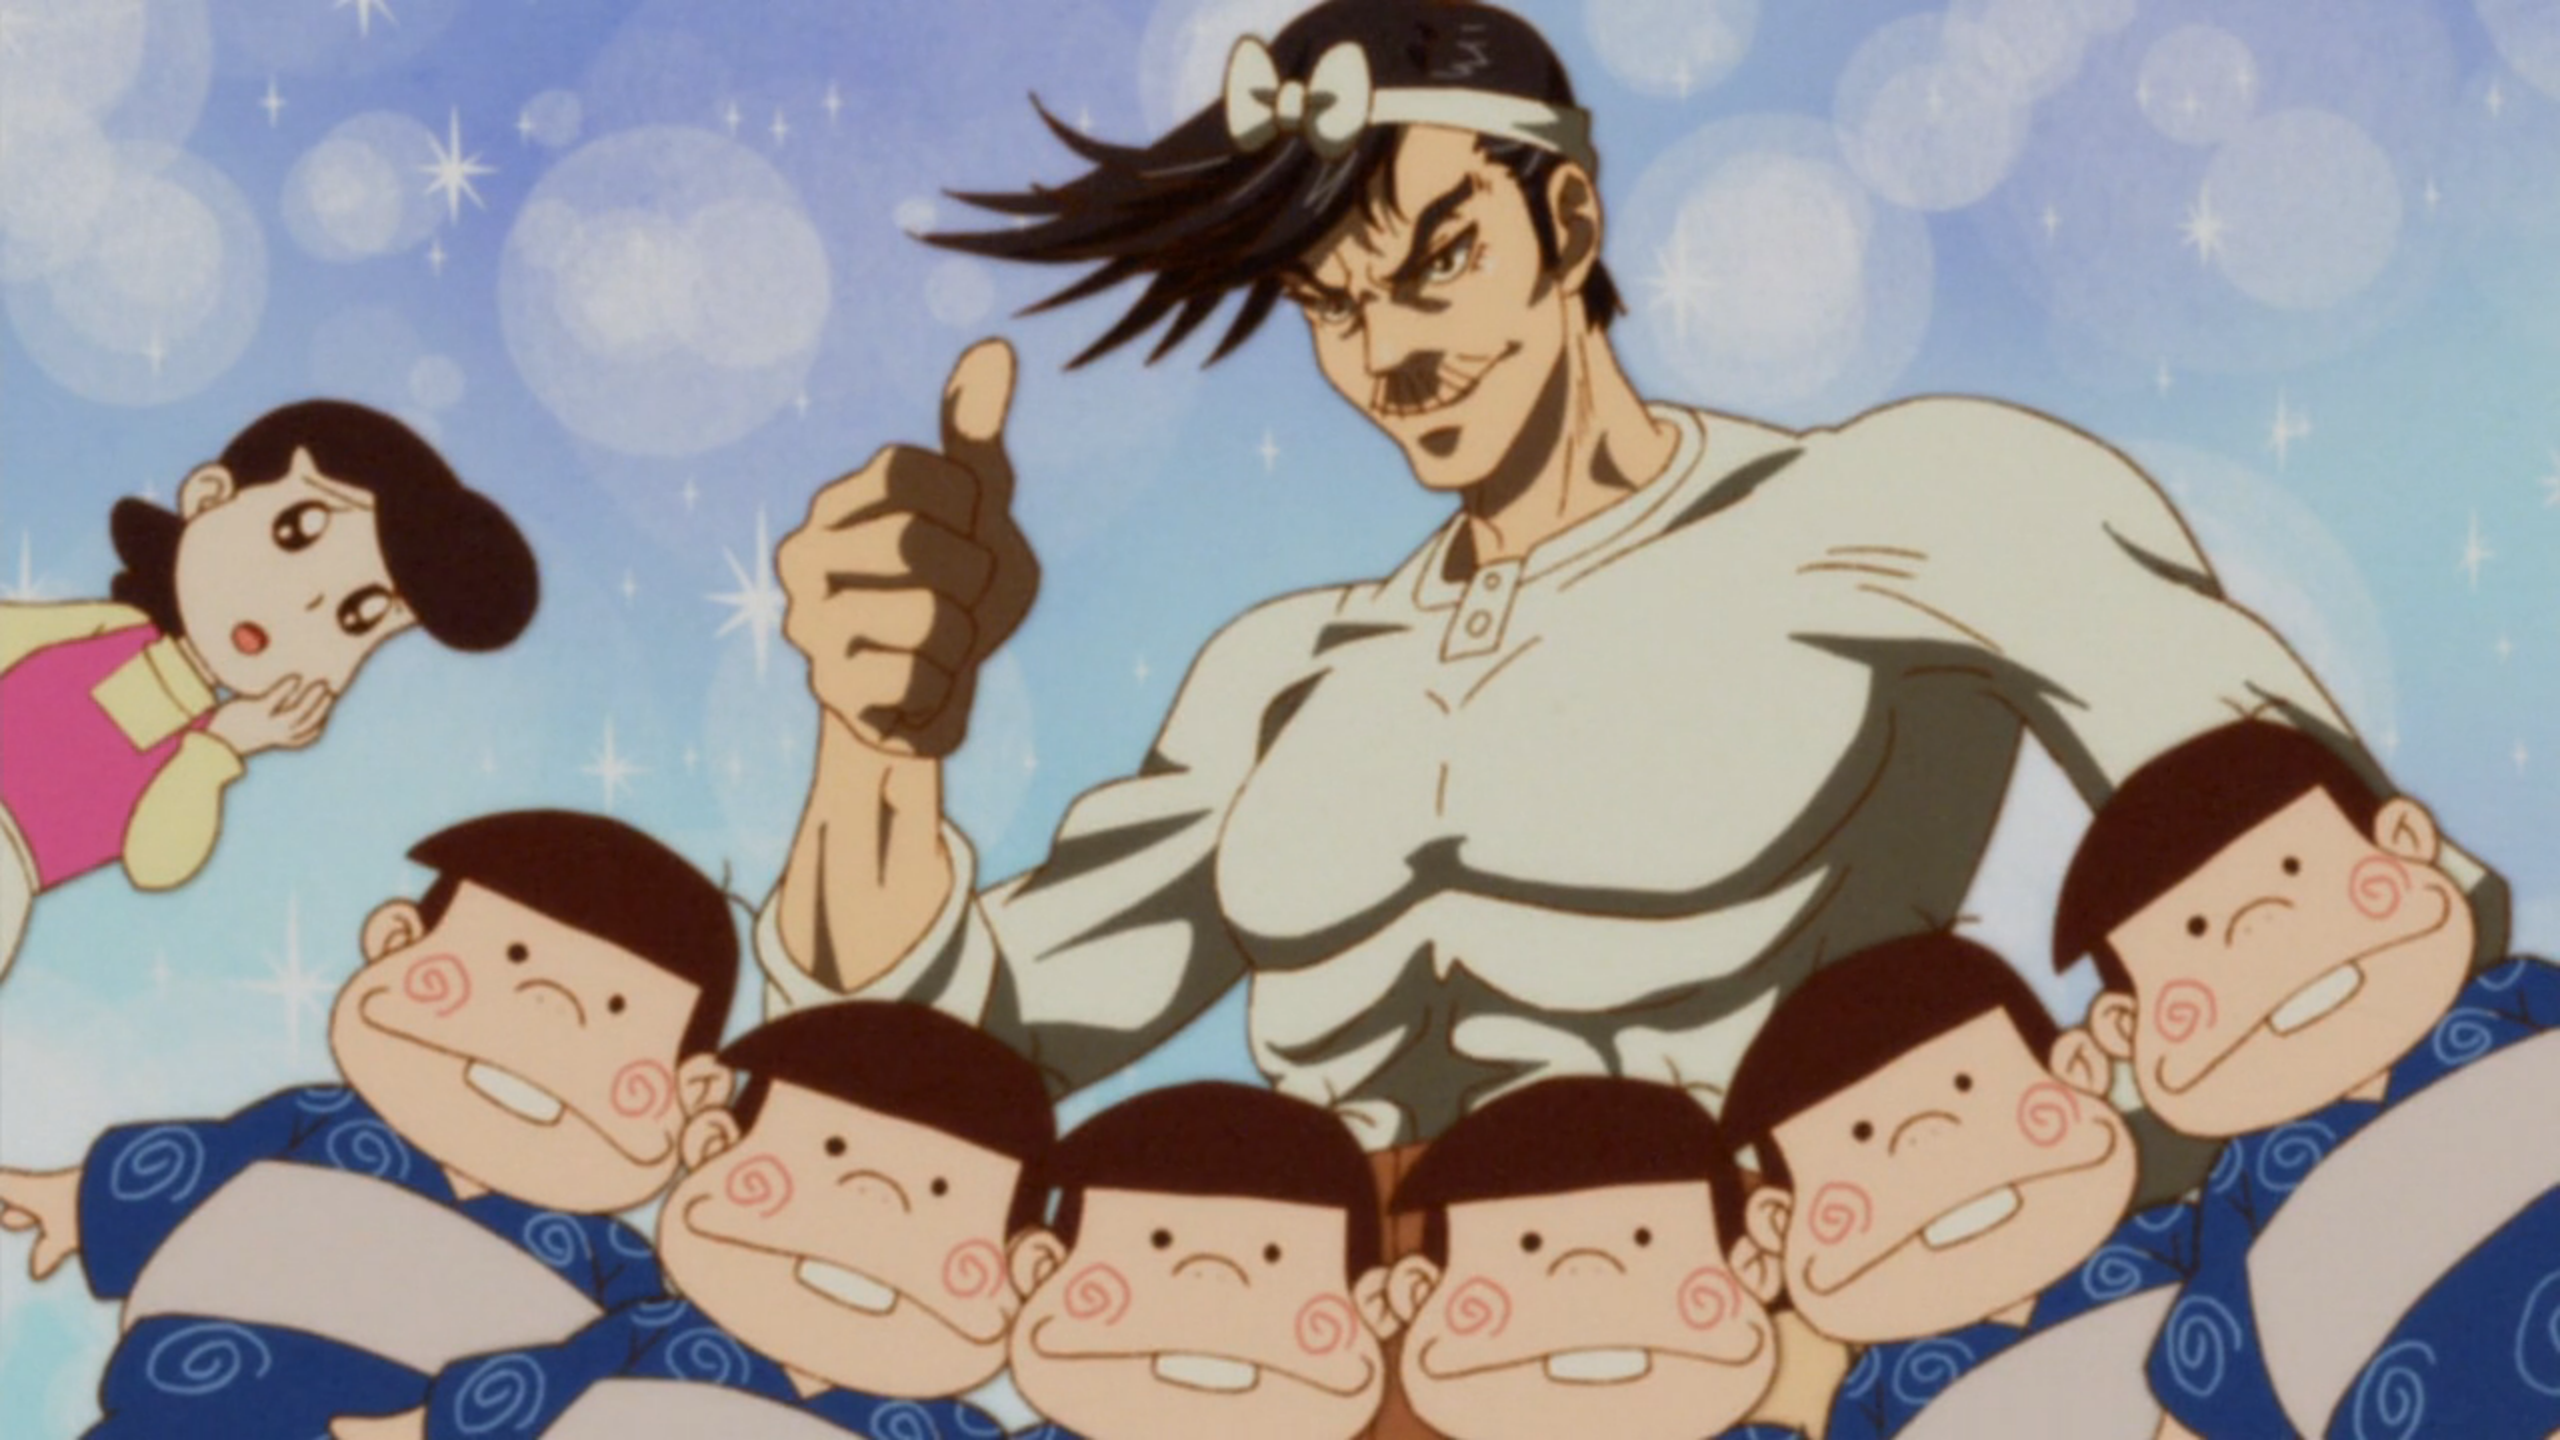 A buff older man stands behind a set of sextuplets and flashes a thumbs up. In the corner, a woman looks concerned.